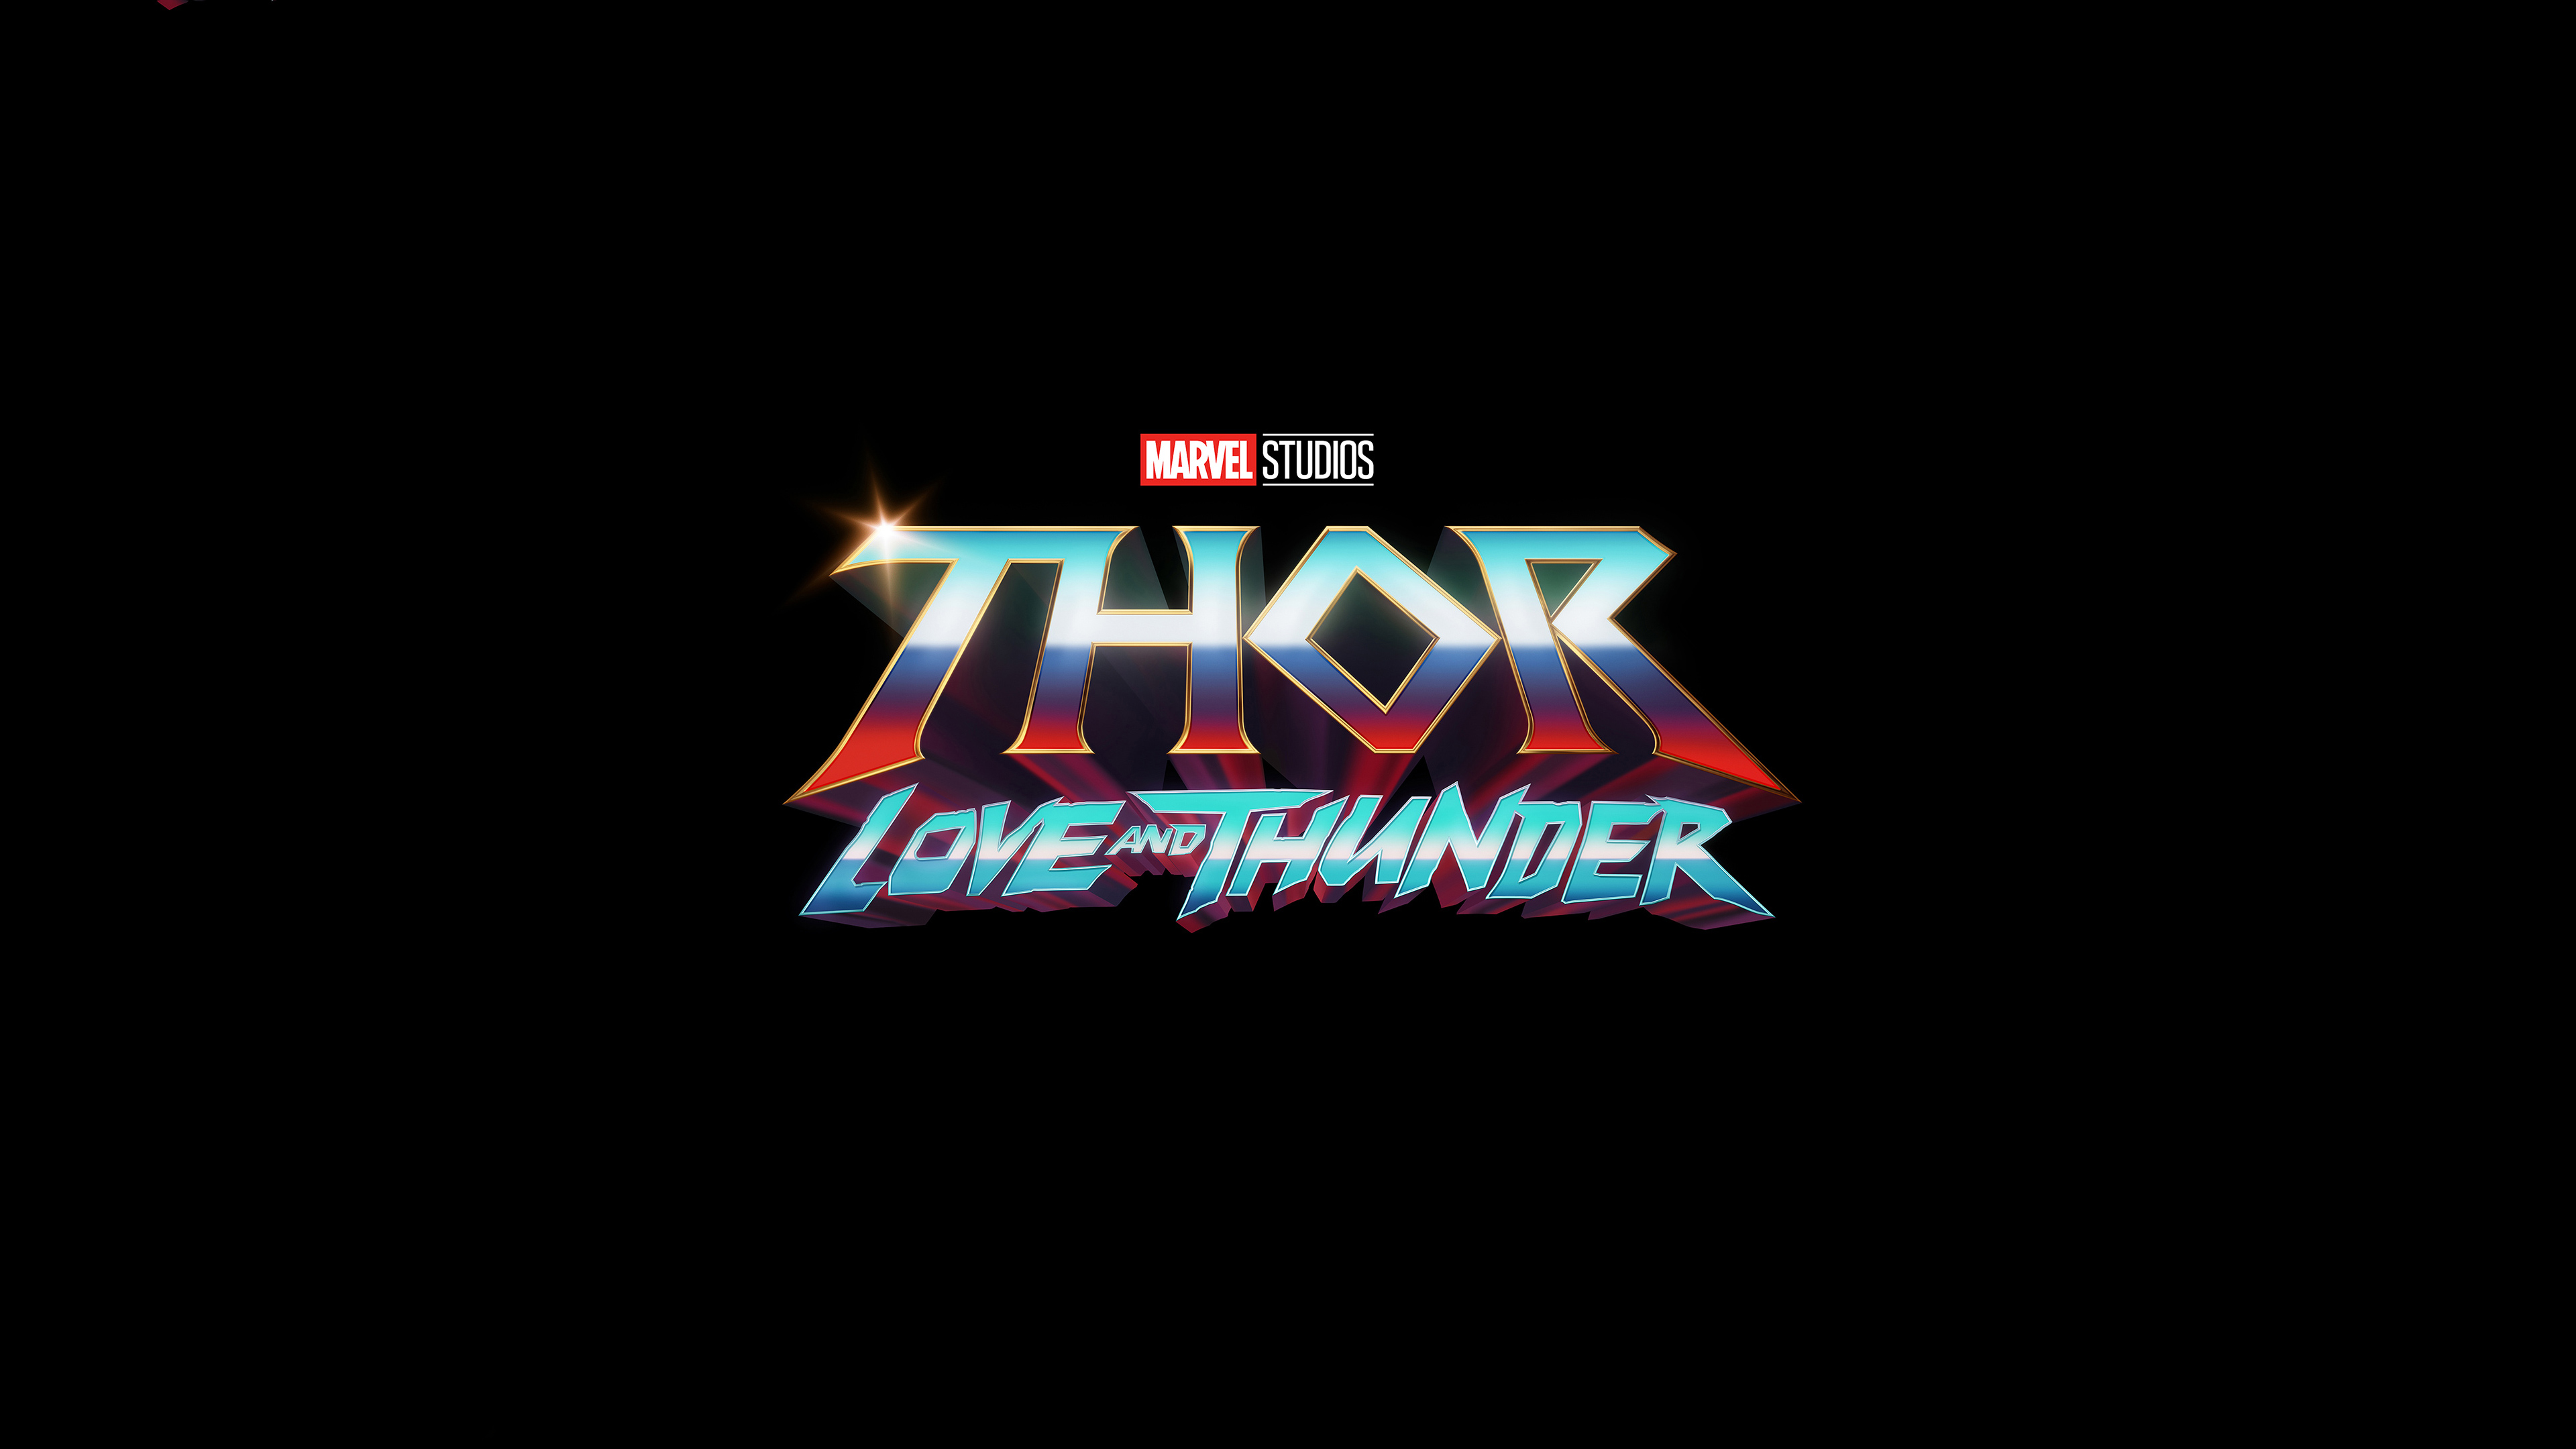 thor love and thunder 2021 logo 1611597608 - Thor Love And Thunder 2021 Logo - Thor Love And Thunder 2021 Logo 4k